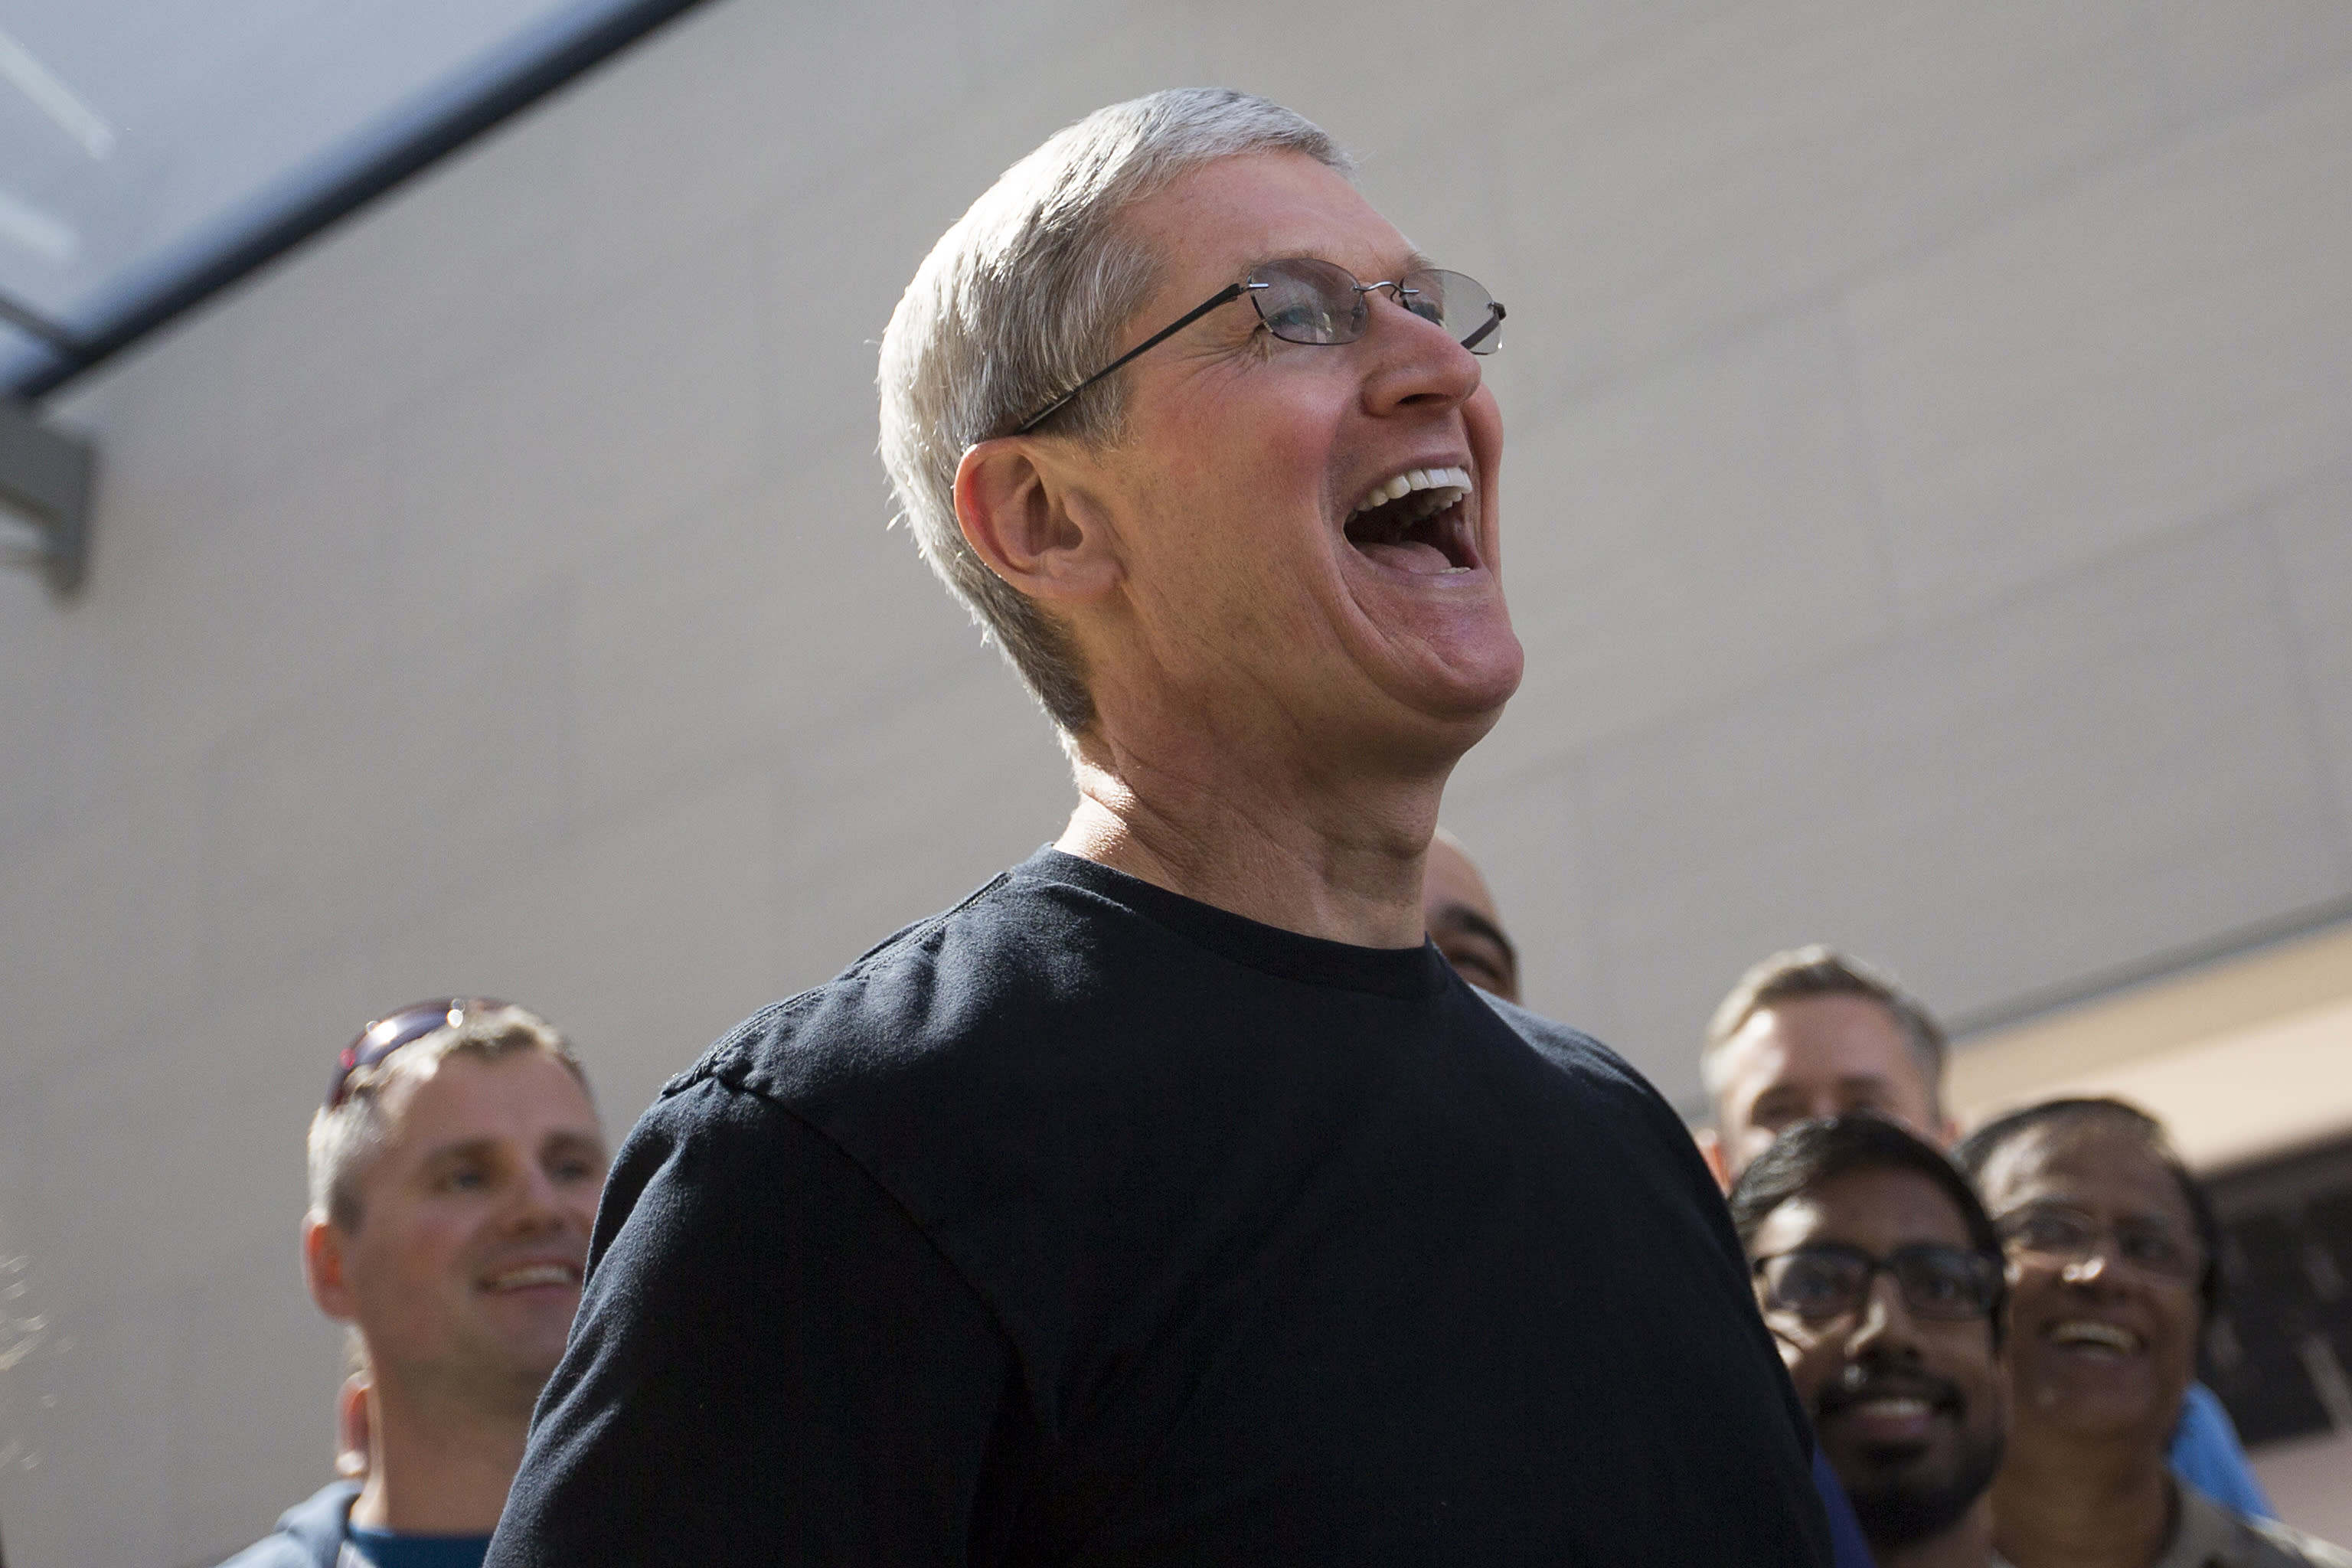 Next week, Apple could finally succeed where Microsoft has failed for almost 20 years